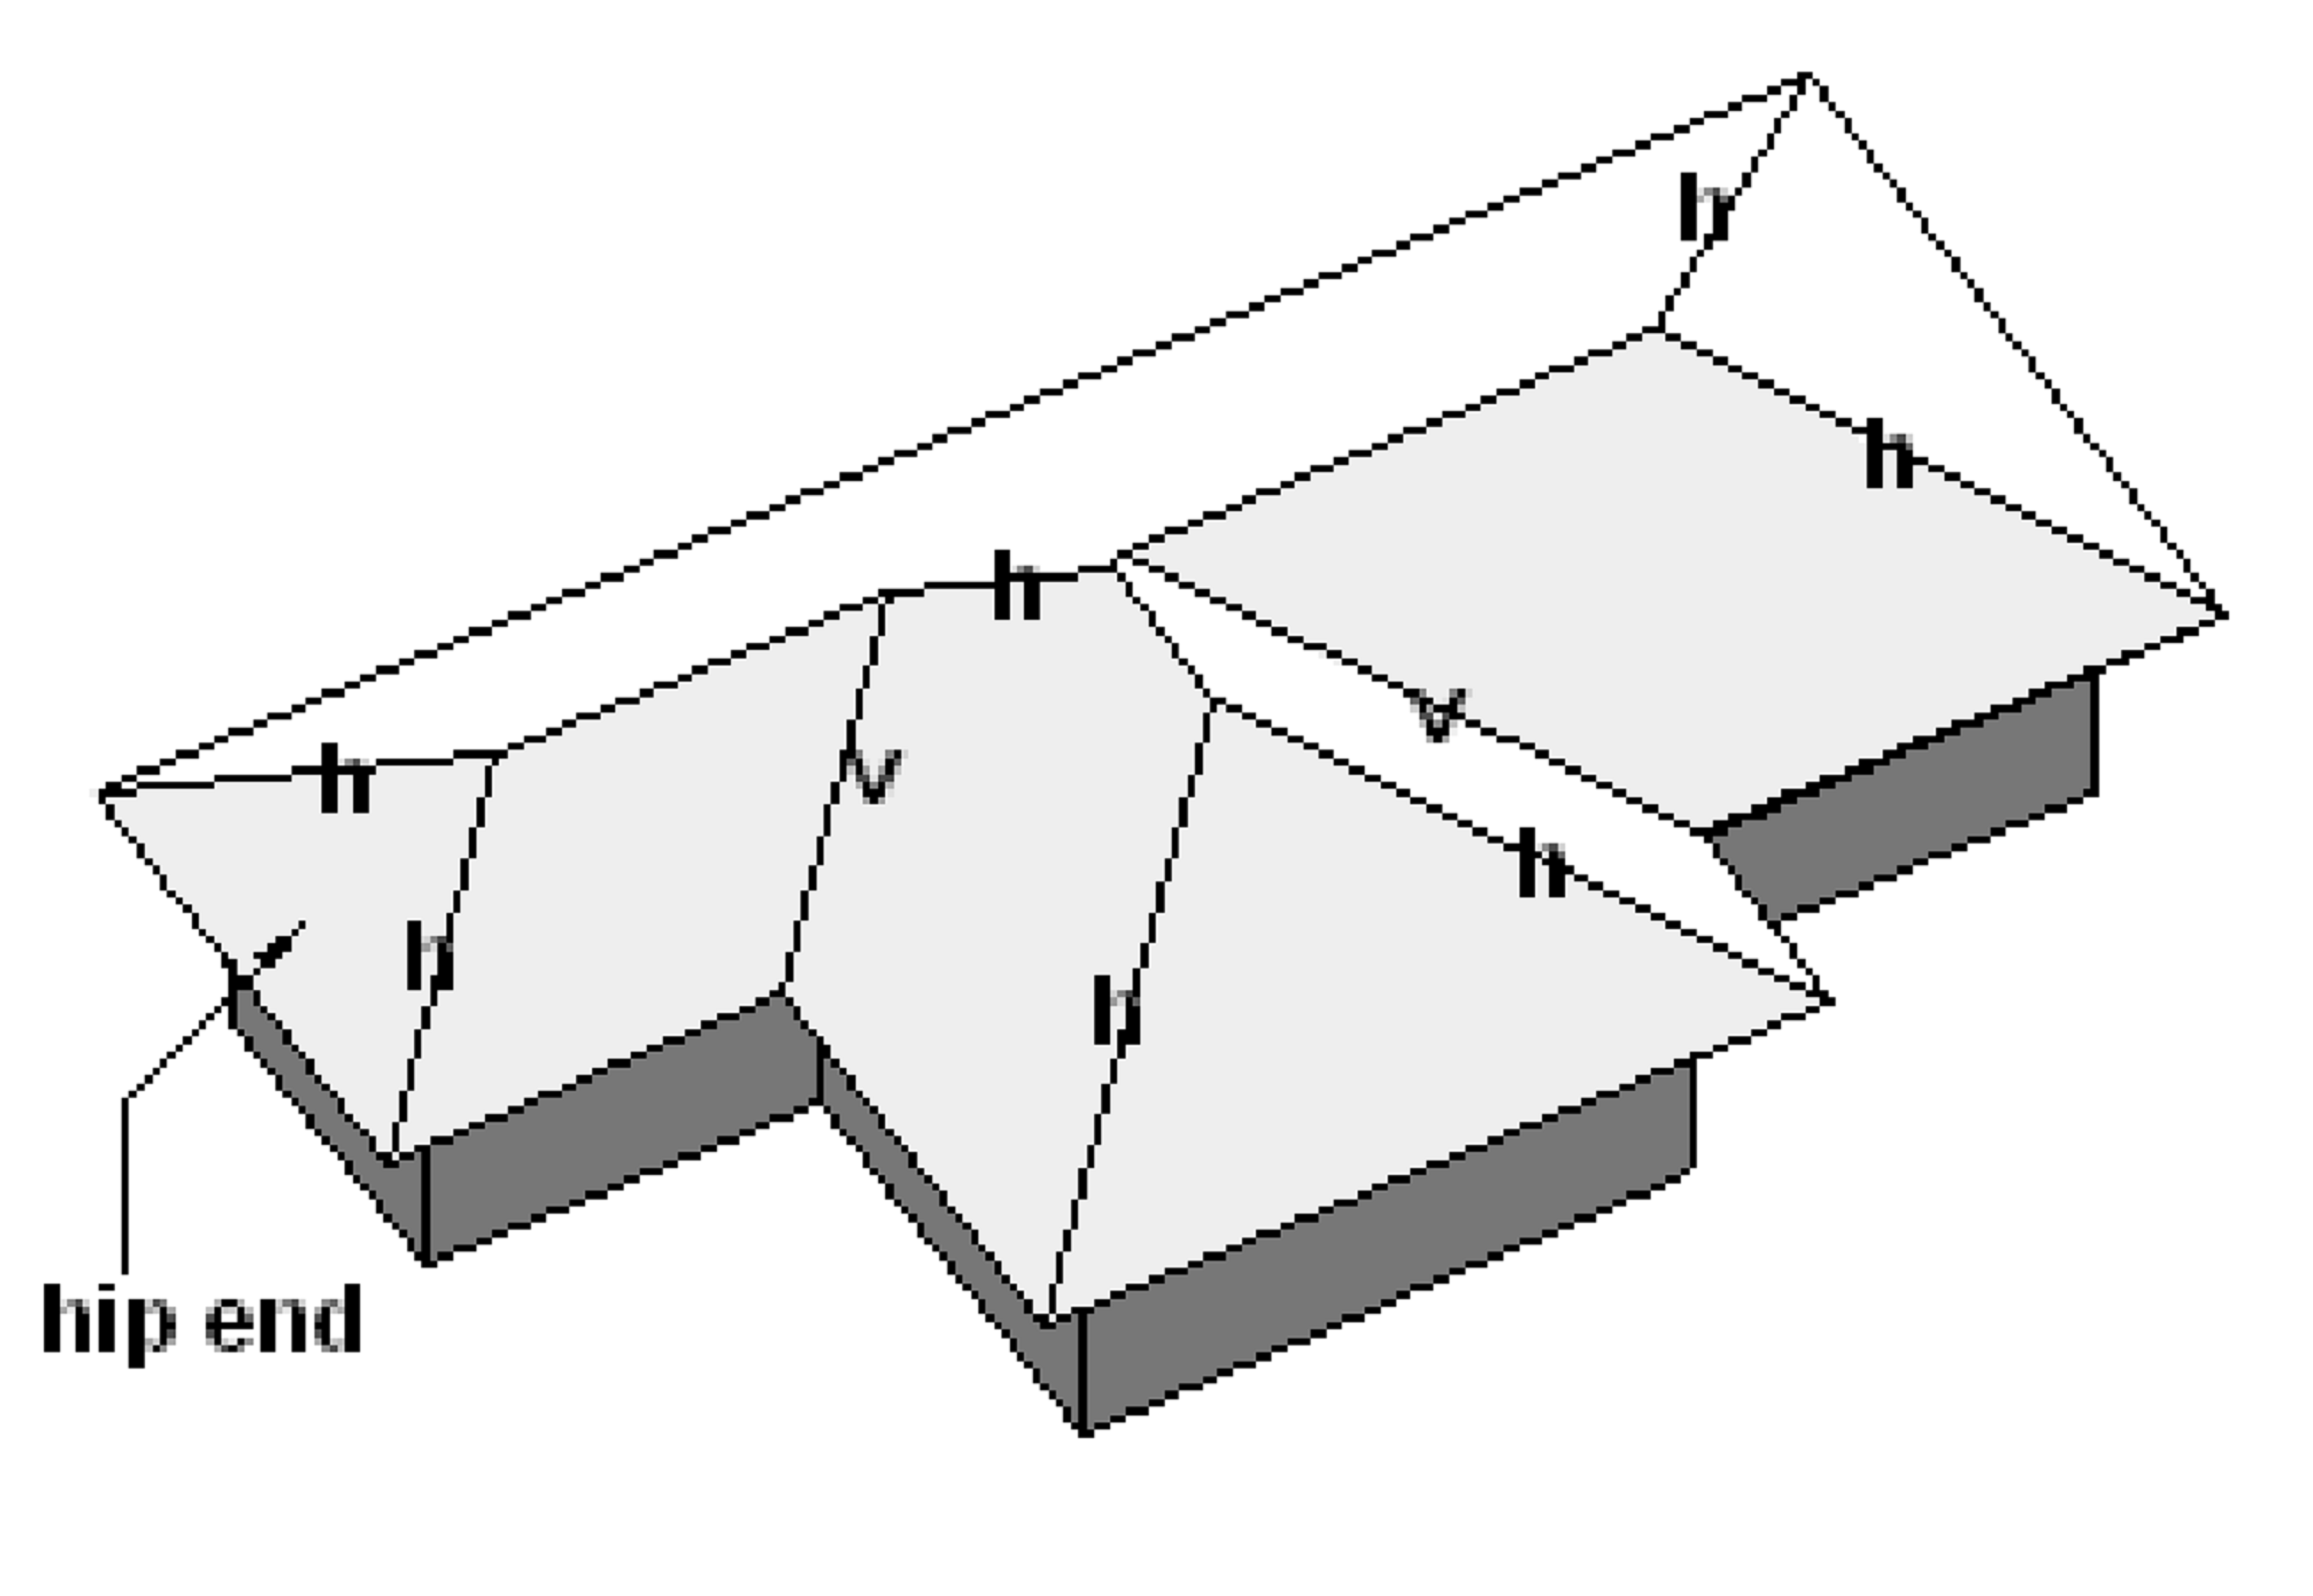 Hip Roof Vs Gable Roof And Its Advantages Disadvantages Hip Roof Roof Design Roofing